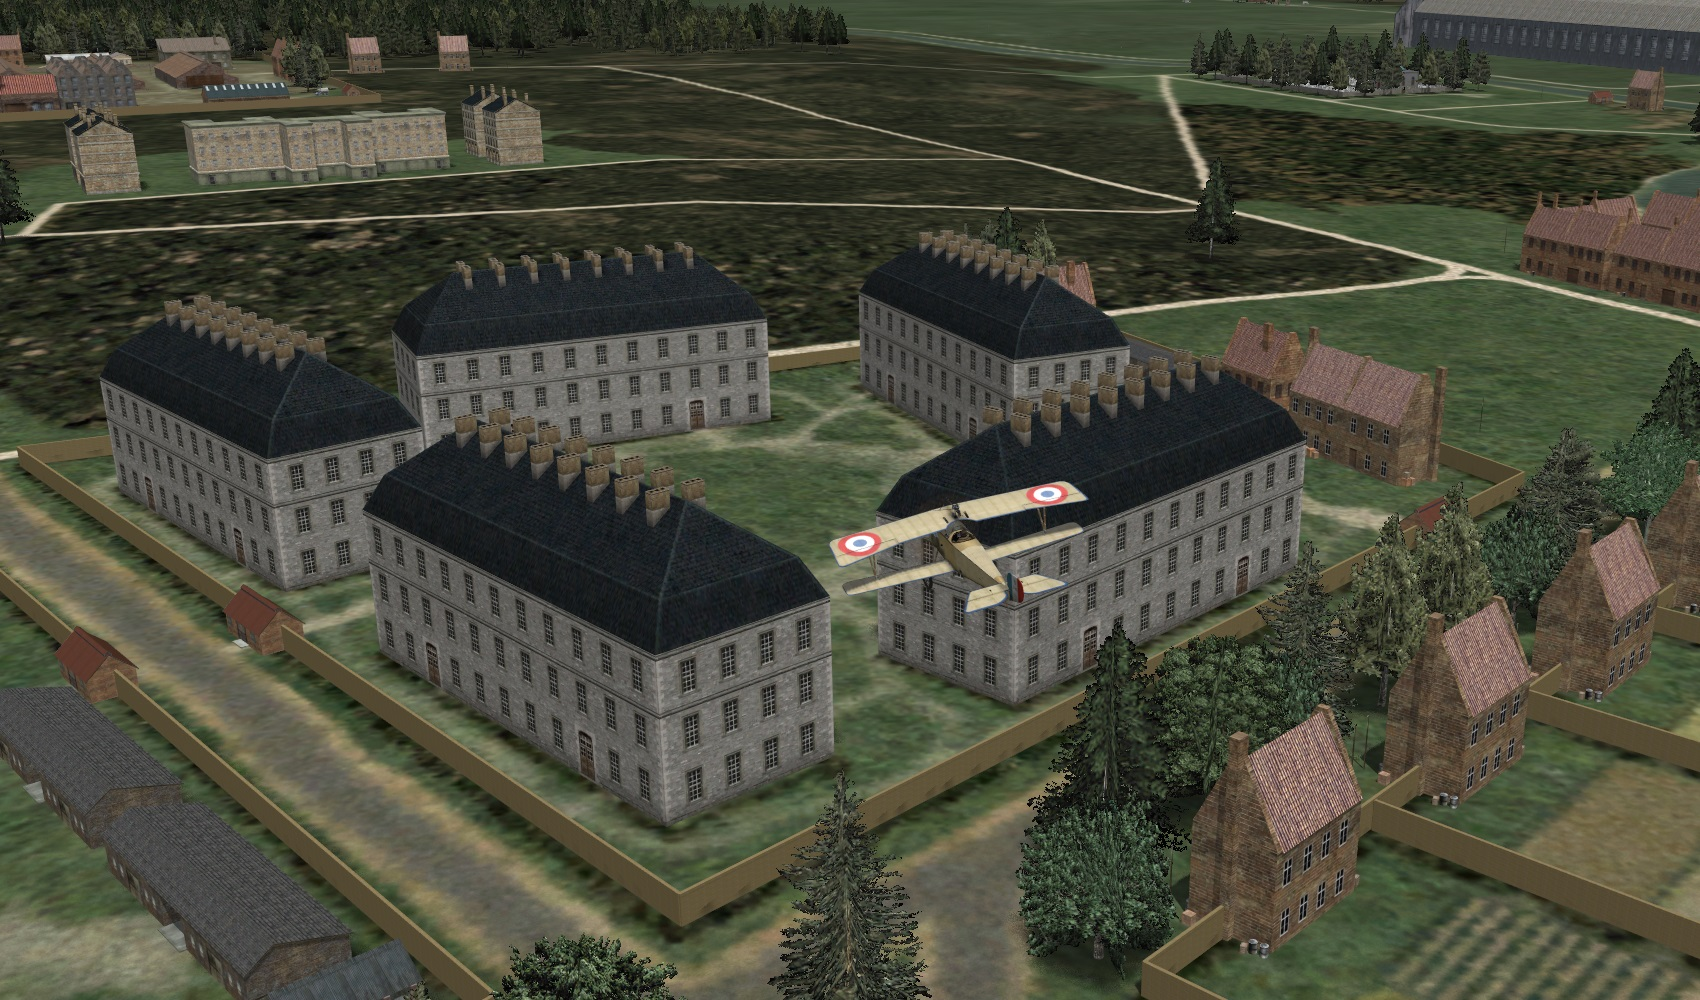 WOFF_UE_Belfort_barracks_test_001.jpg